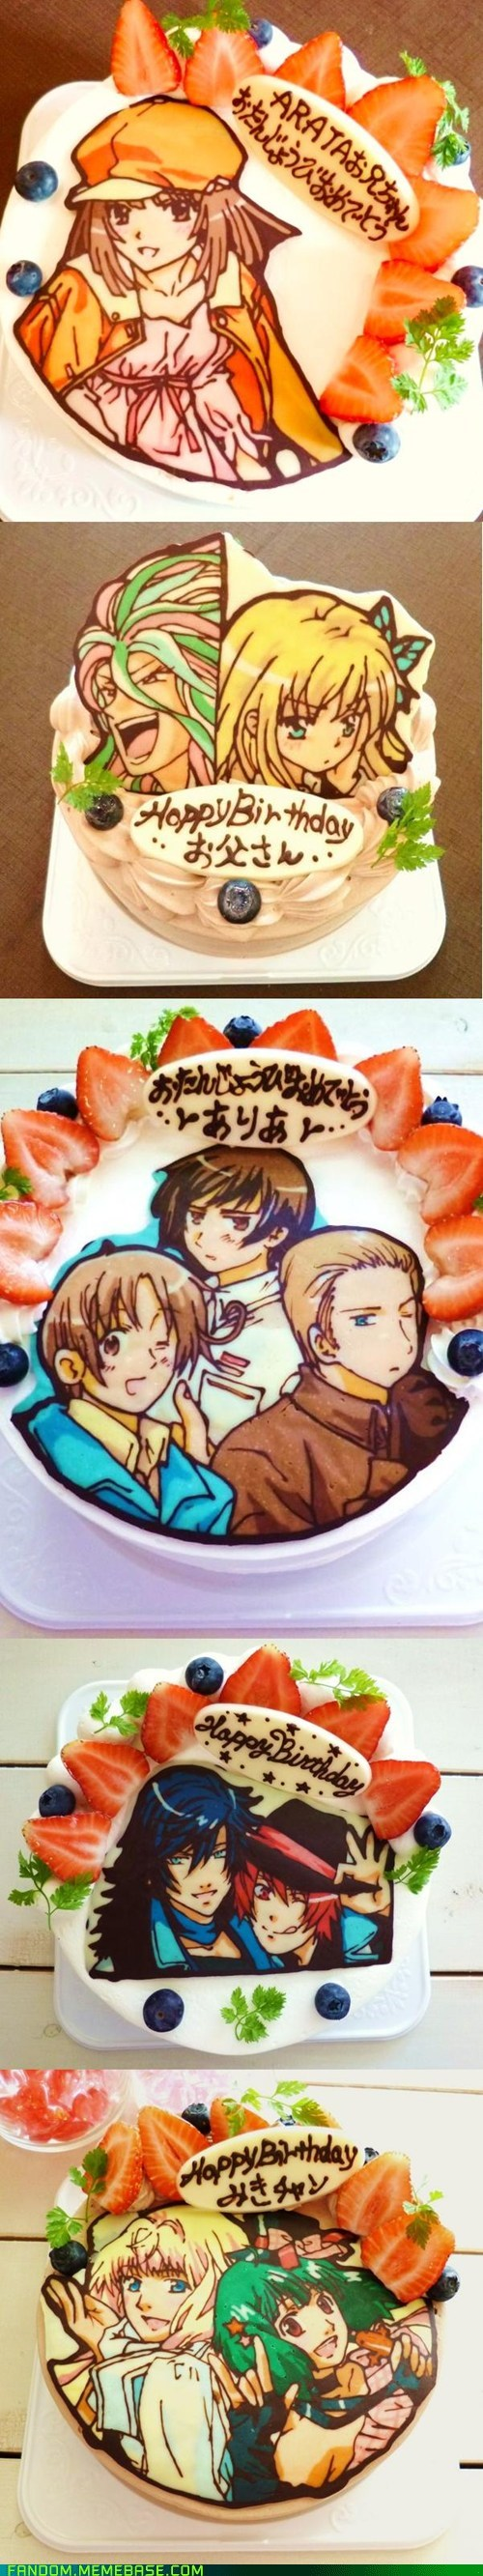 anime cake Fan Art noms - 6436460032